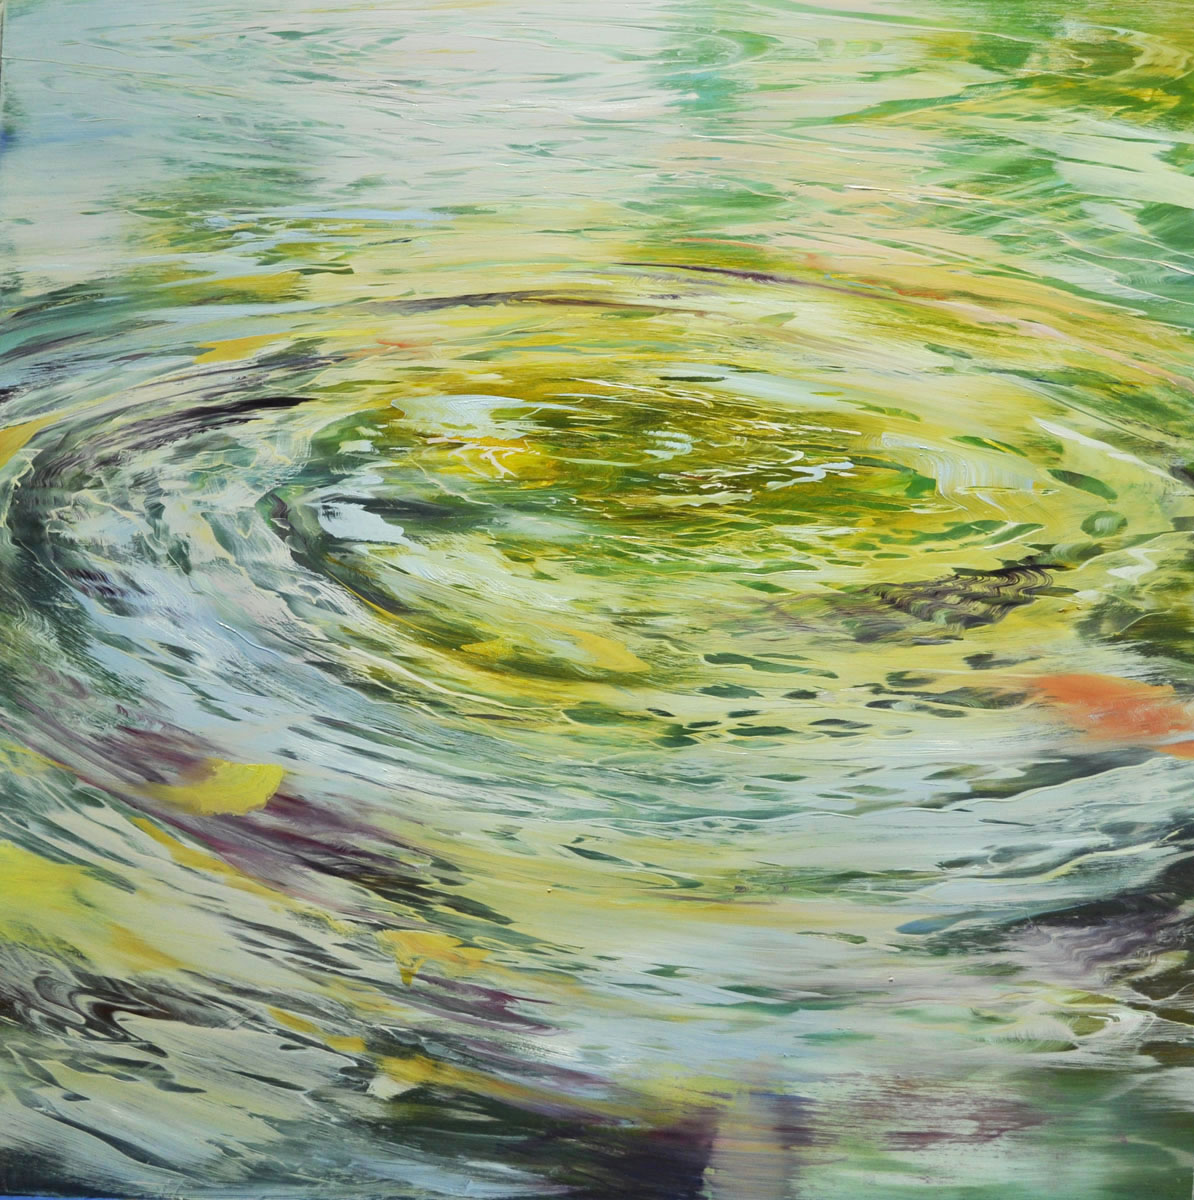 """Water Circles, Vibrations in Color"", oil on anodized aluminum, 36x36"